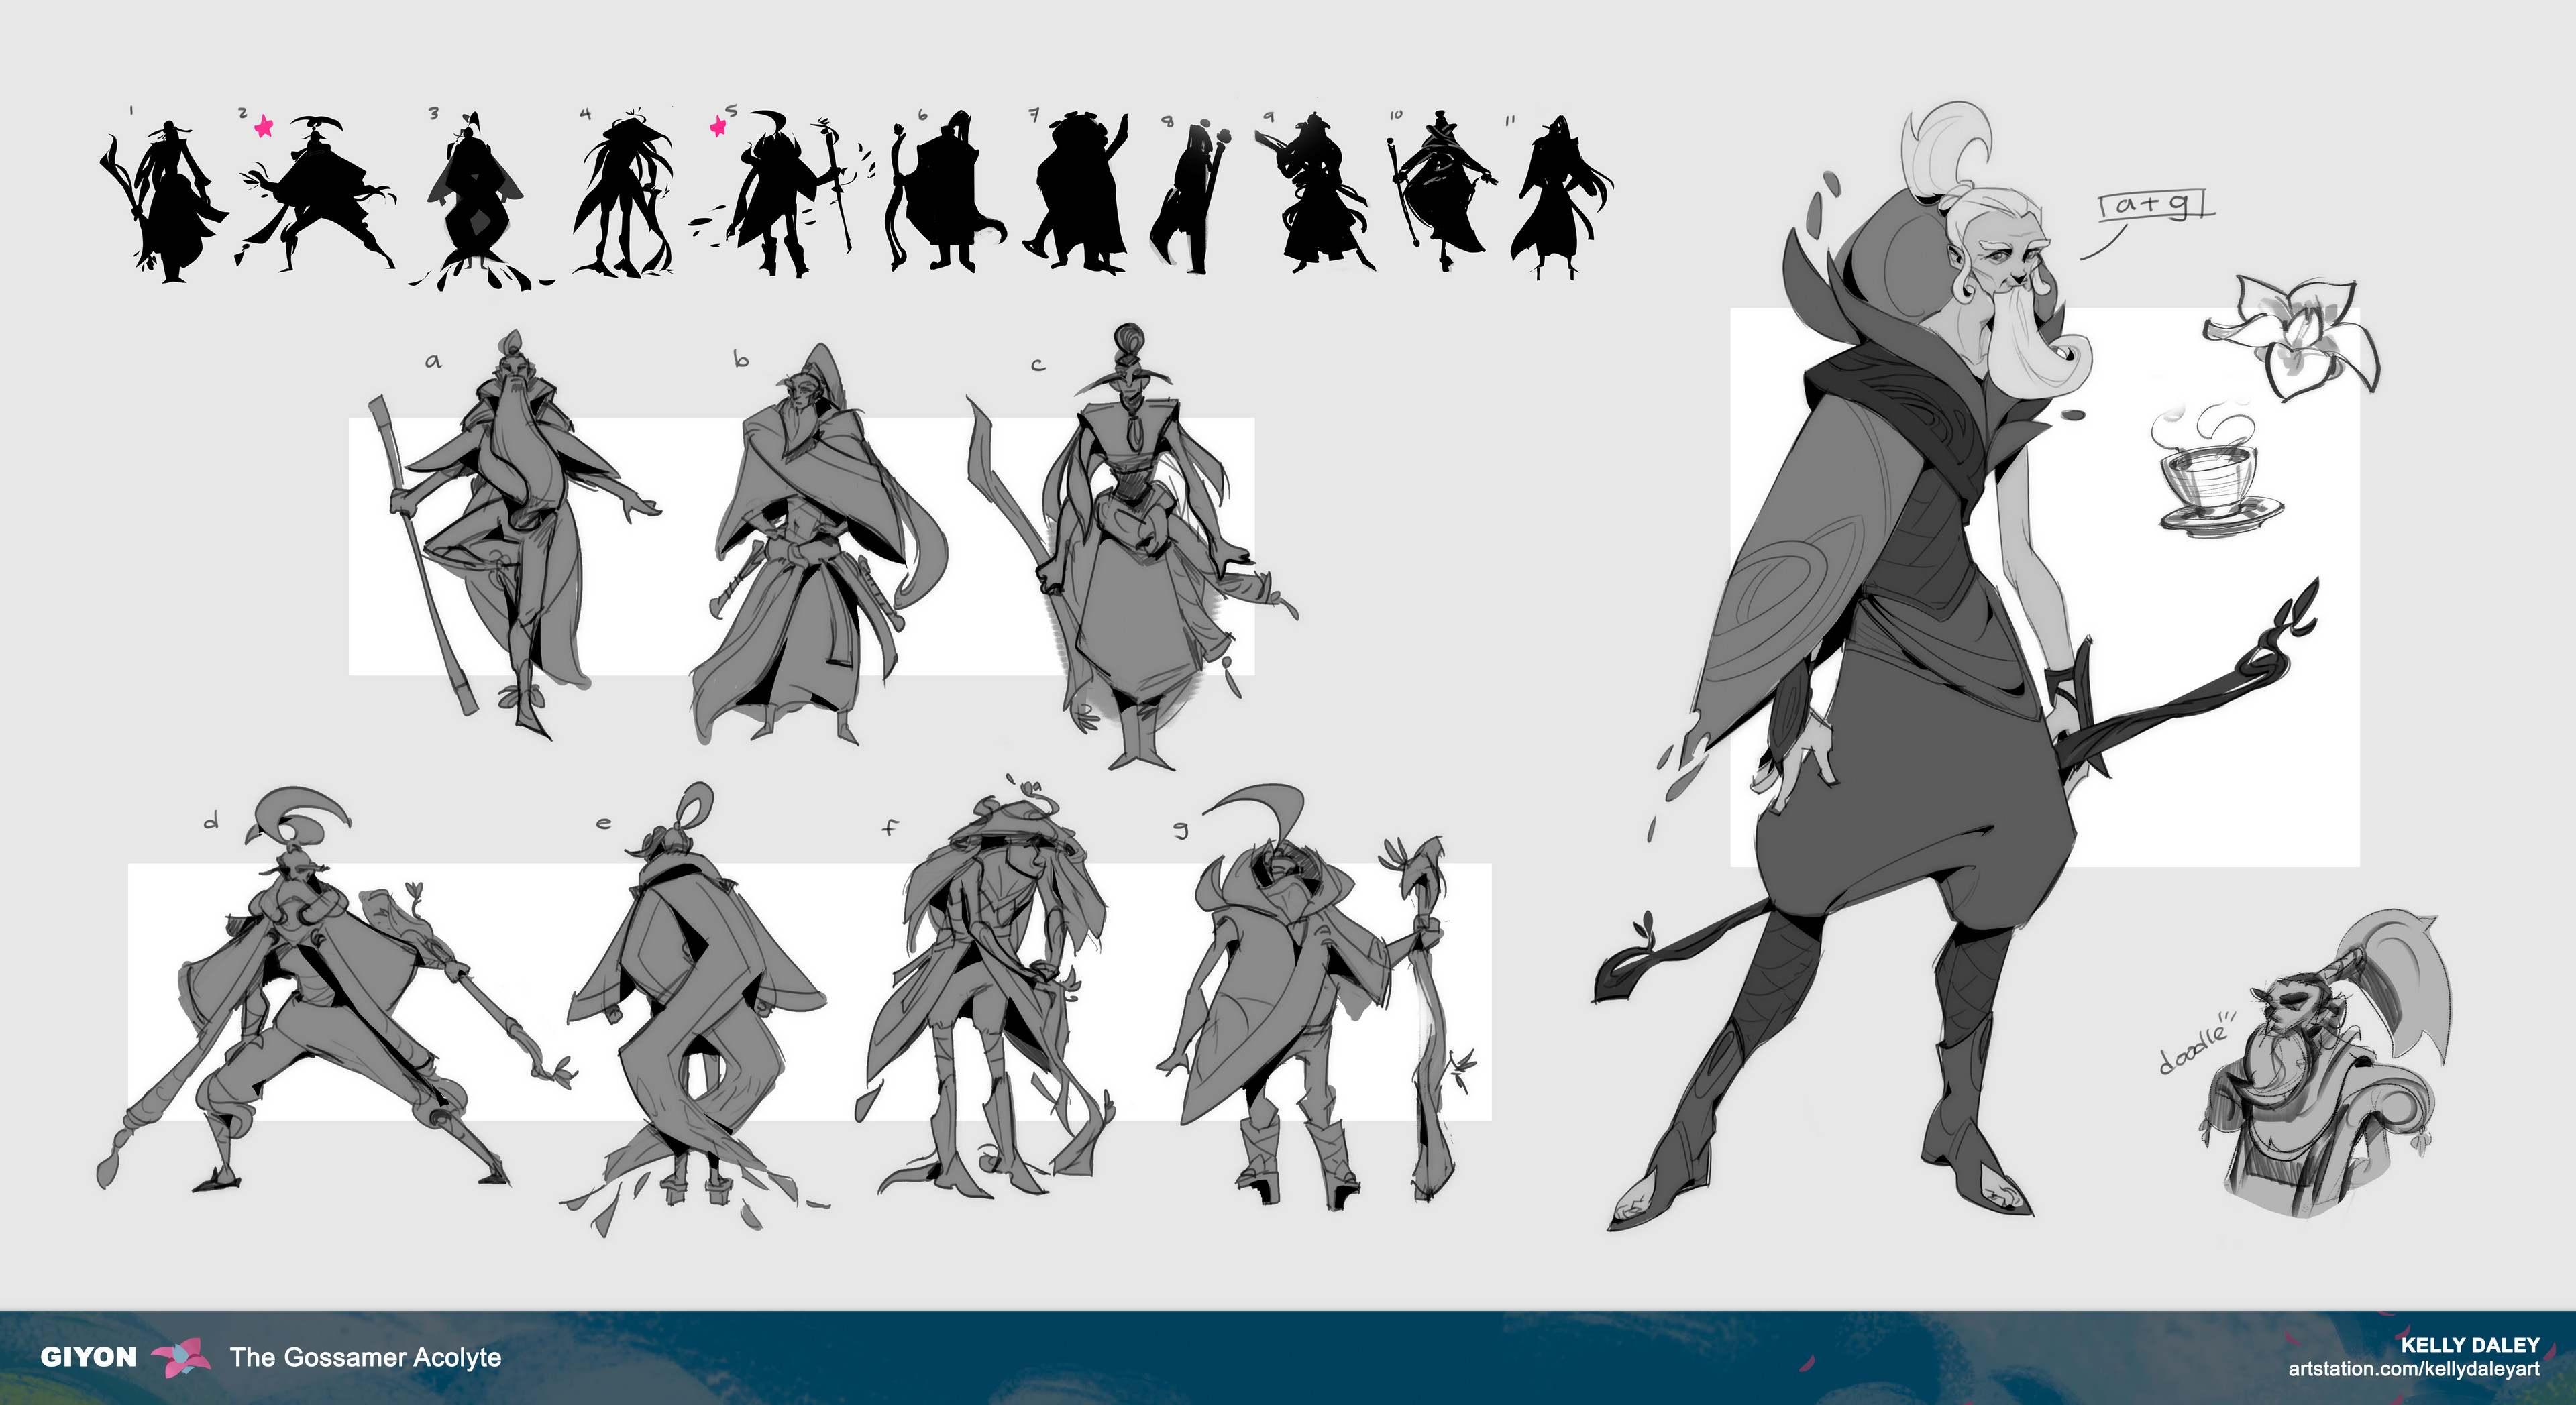 THE FIRST exploration sketches of Giyon. I began with silhouettes because I was truthfully scared of starting. Once I felt more confident, I began taking those silhouettes and exploring with line. These felt both too extreme and basic at the same time.